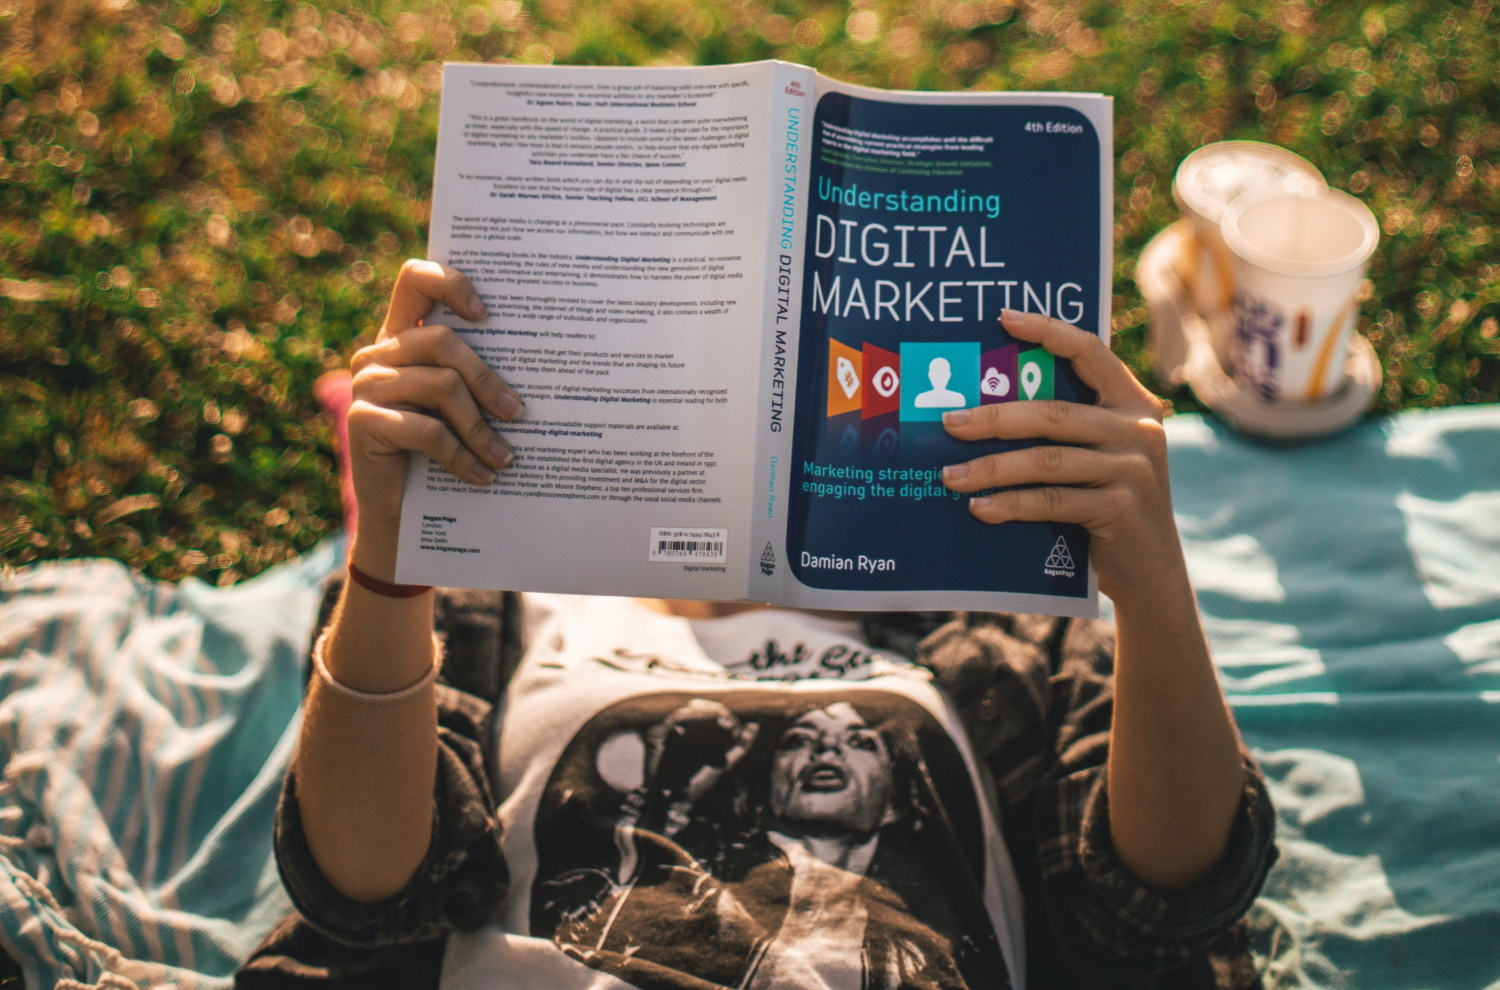 person reading book on digital marketing terms